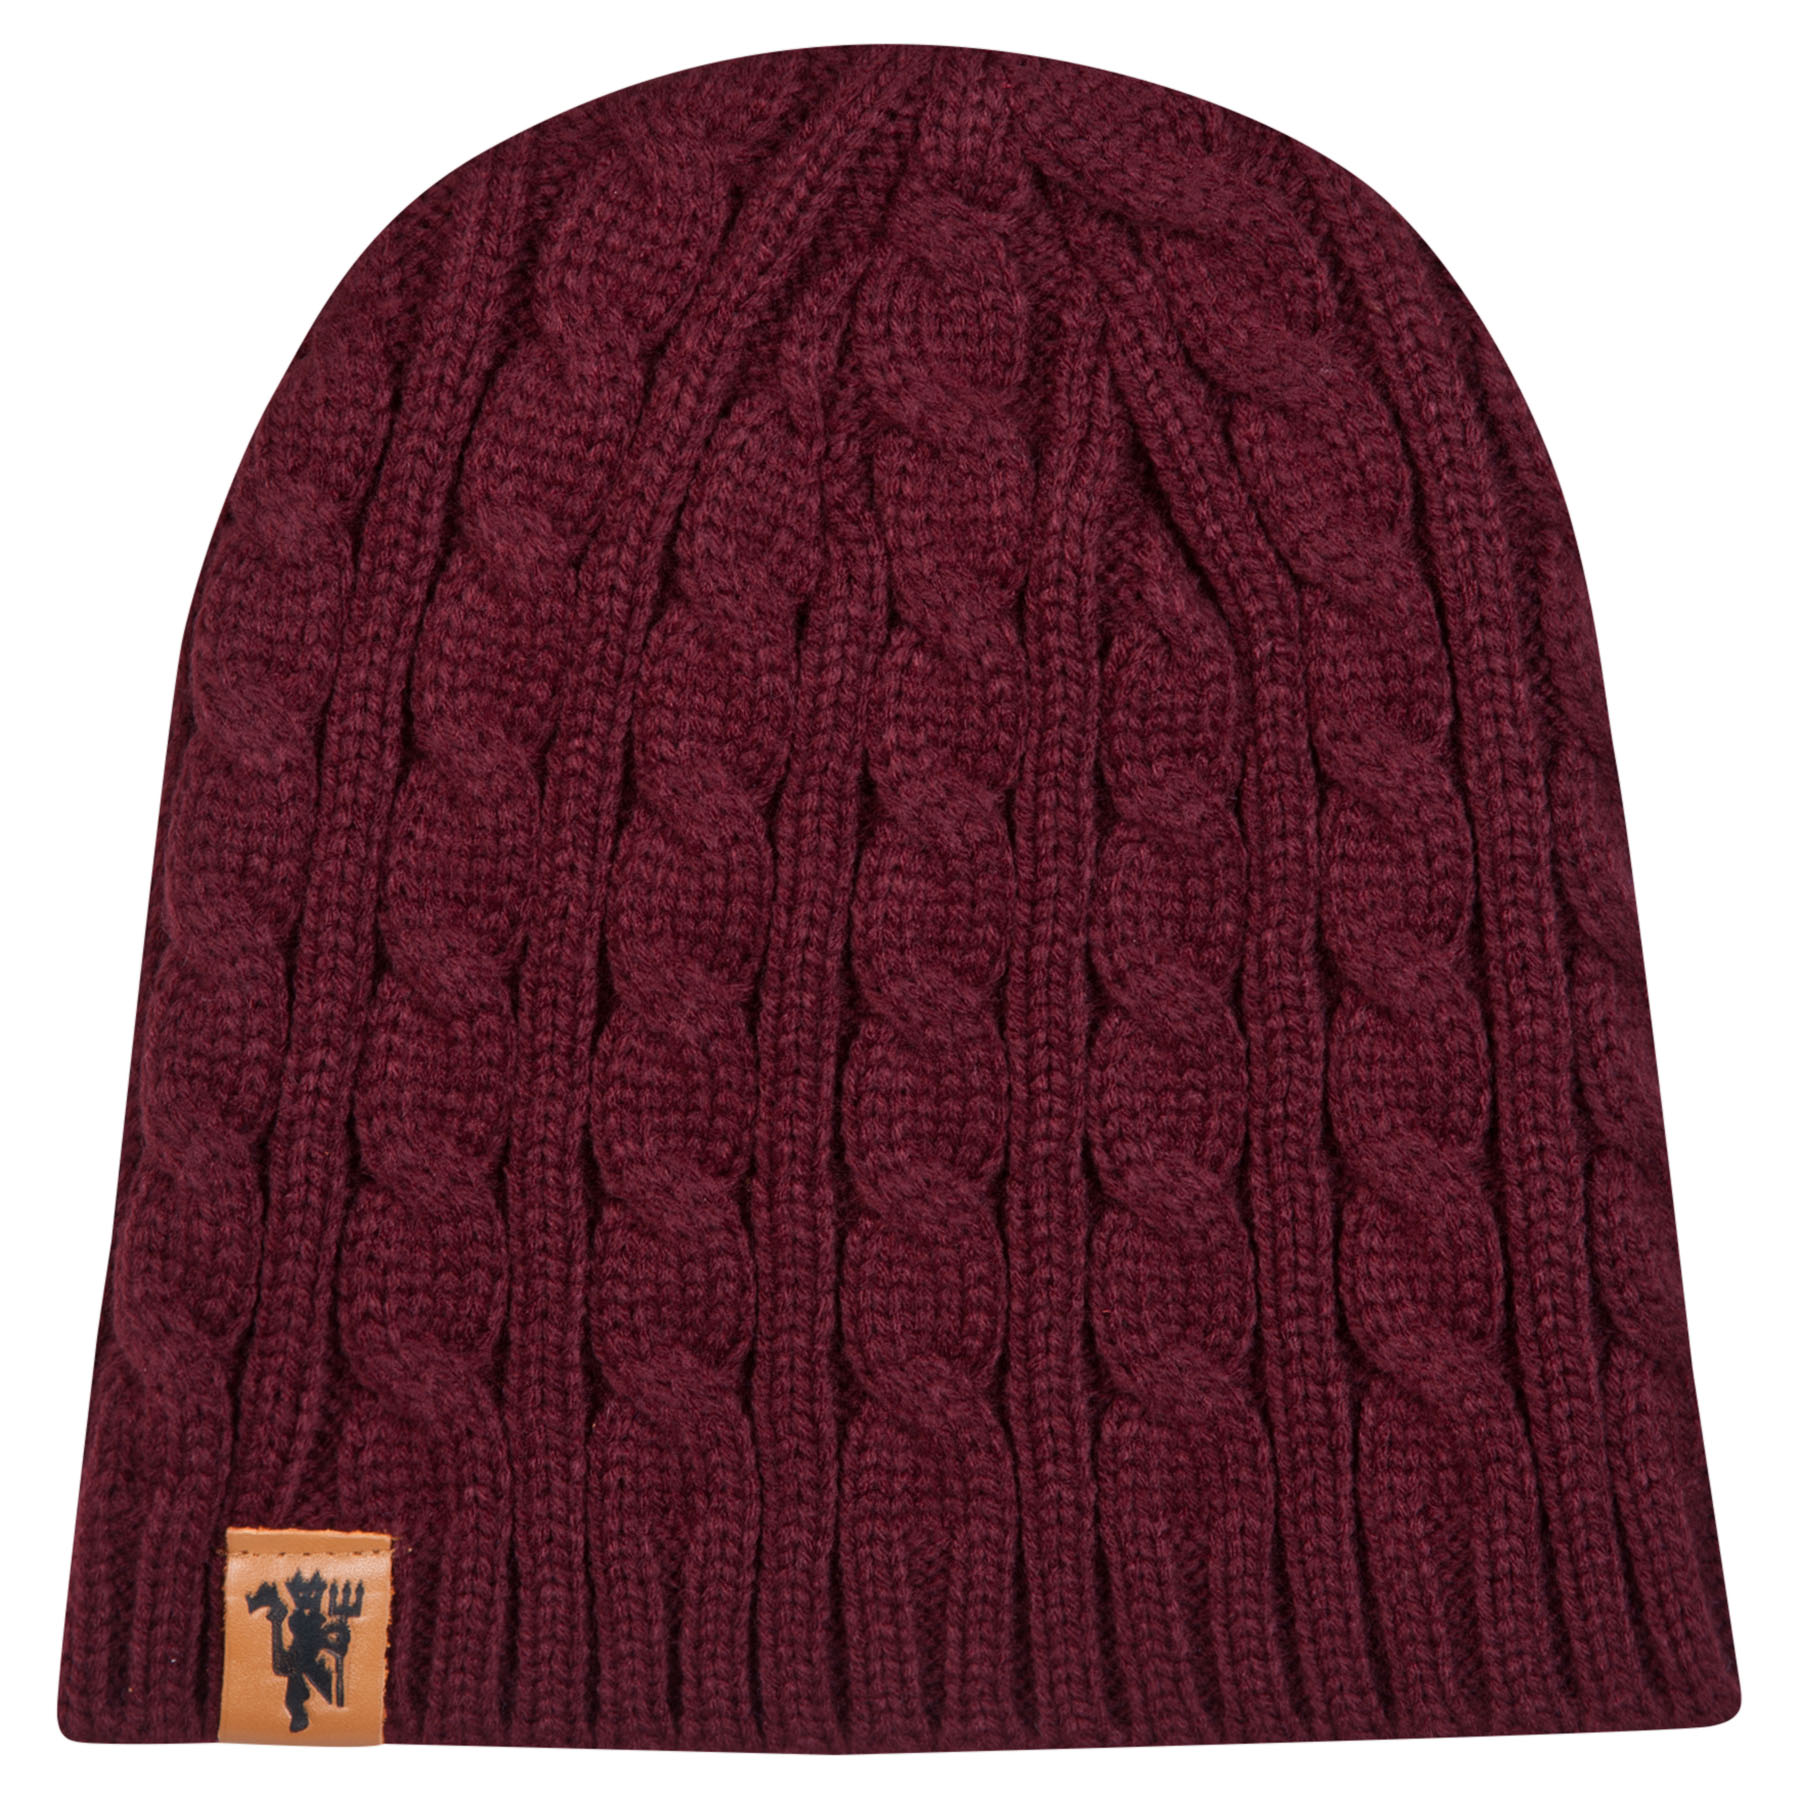 Manchester United Captains Beanie Hat - Burgundy - Adult